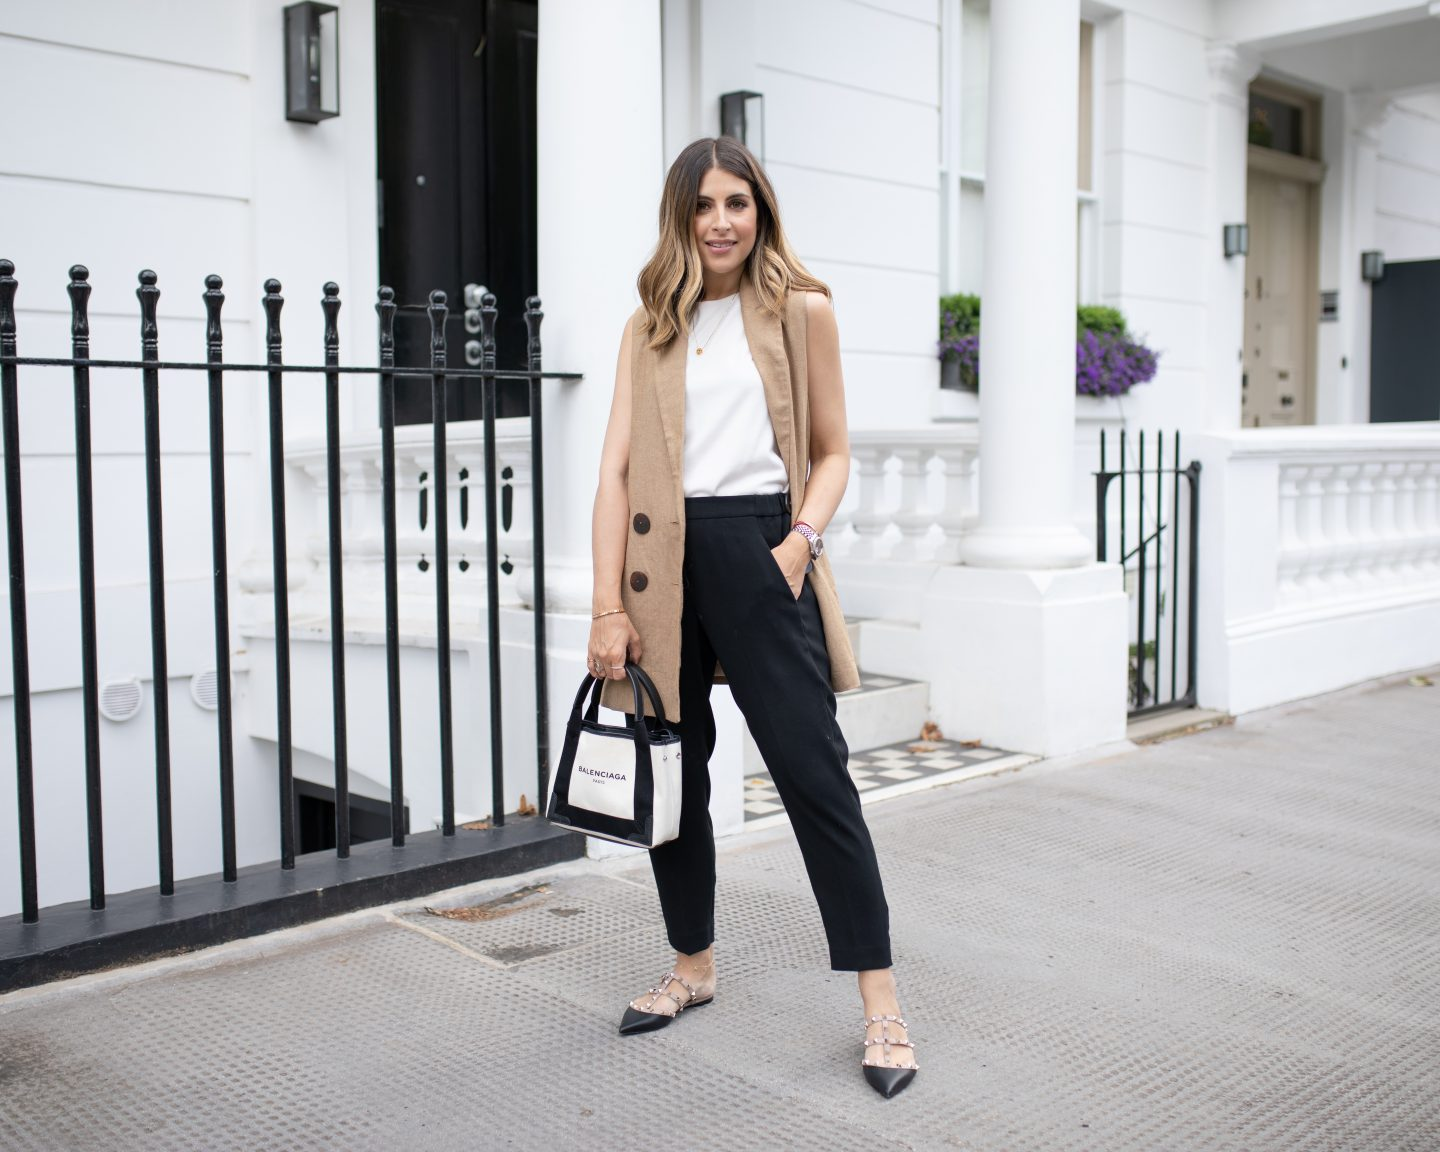 3 WORKWEAR STYLES TO TRY NOW